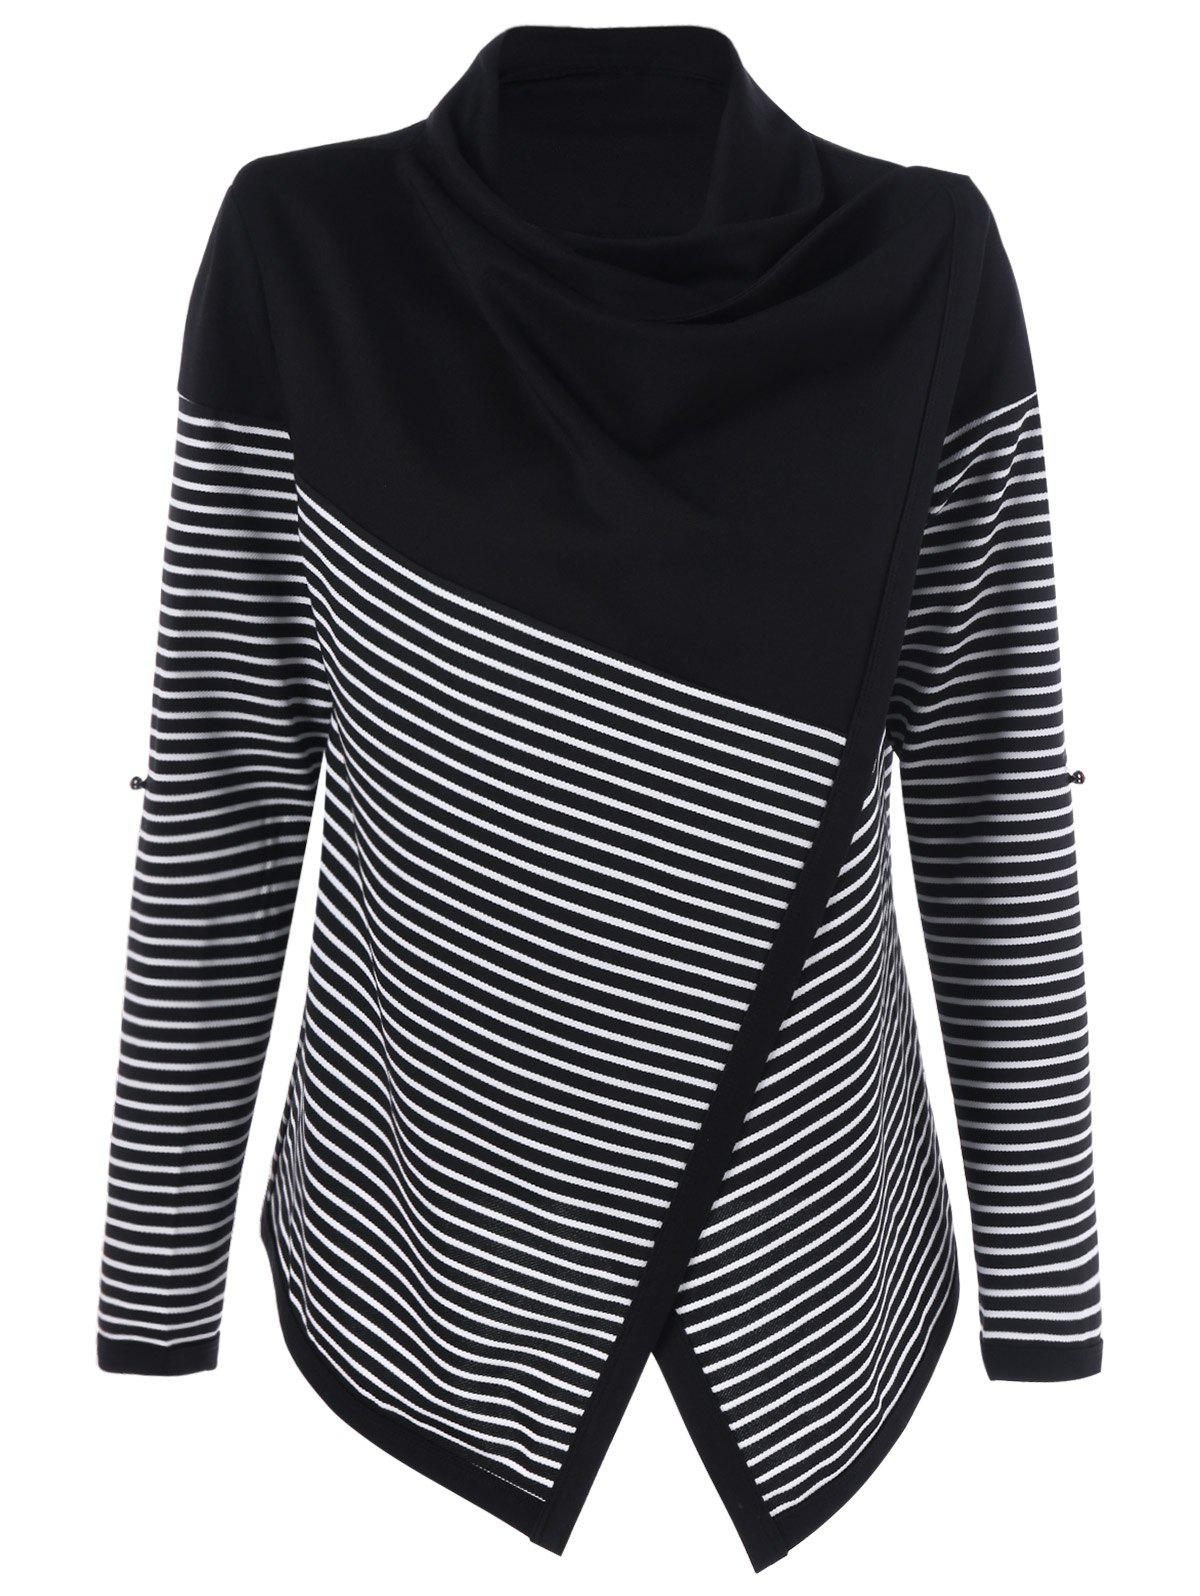 Cowl Neck Surplice Striped Knitwear синтезатор casio lk 265 61клав